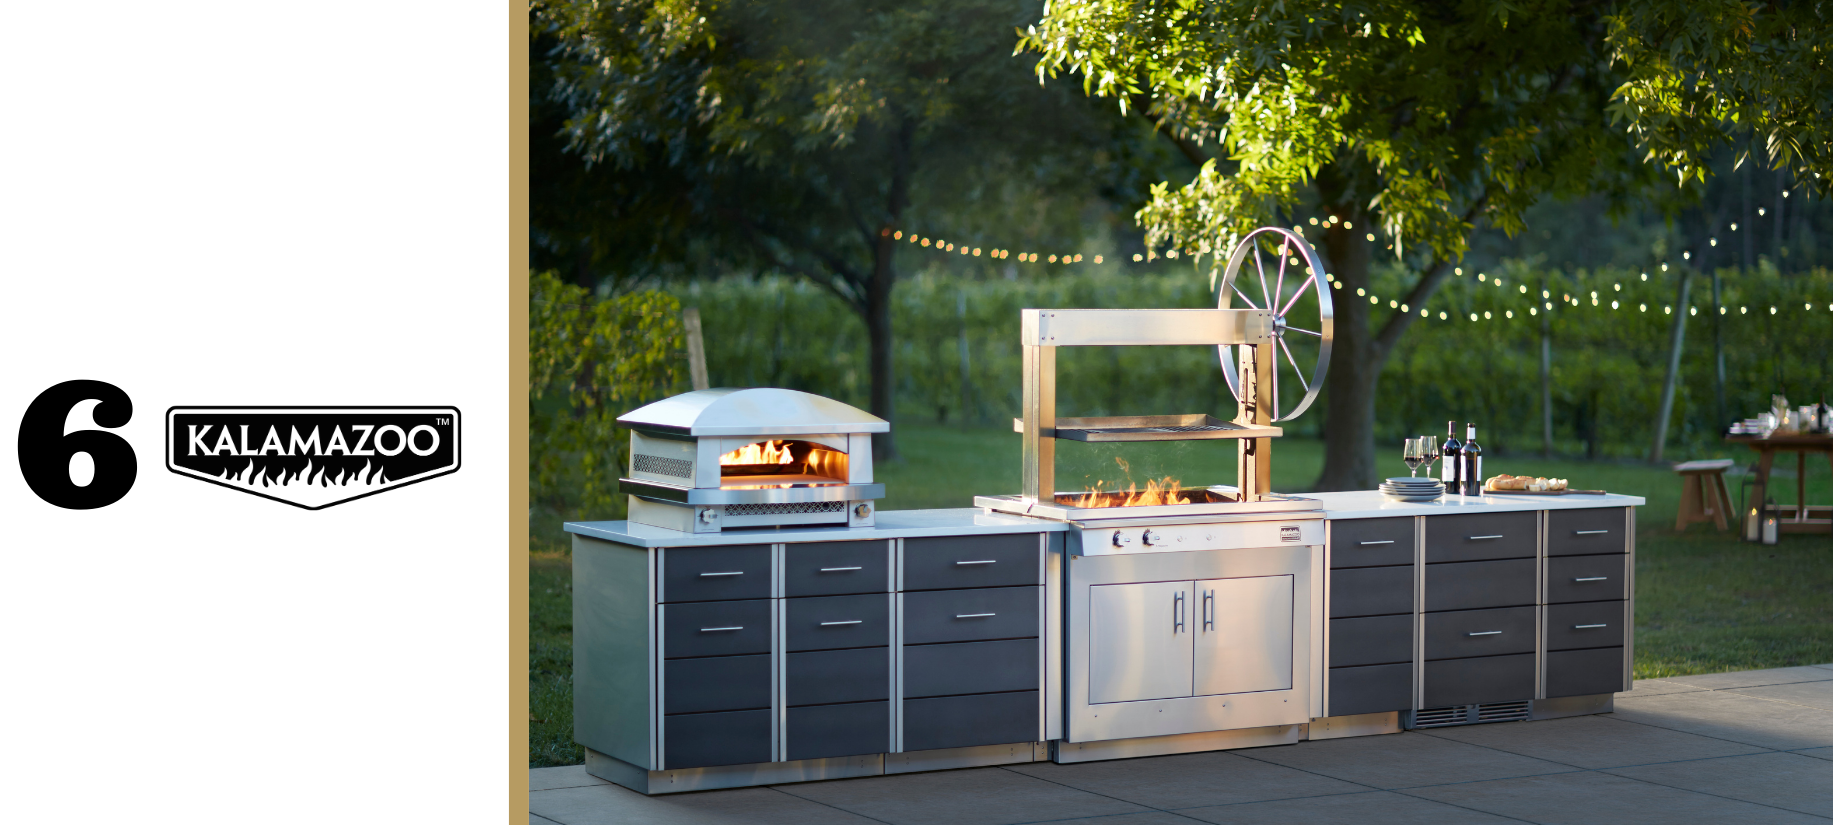 Kalamazoo gaucho grill, pizza oven and cabinetry